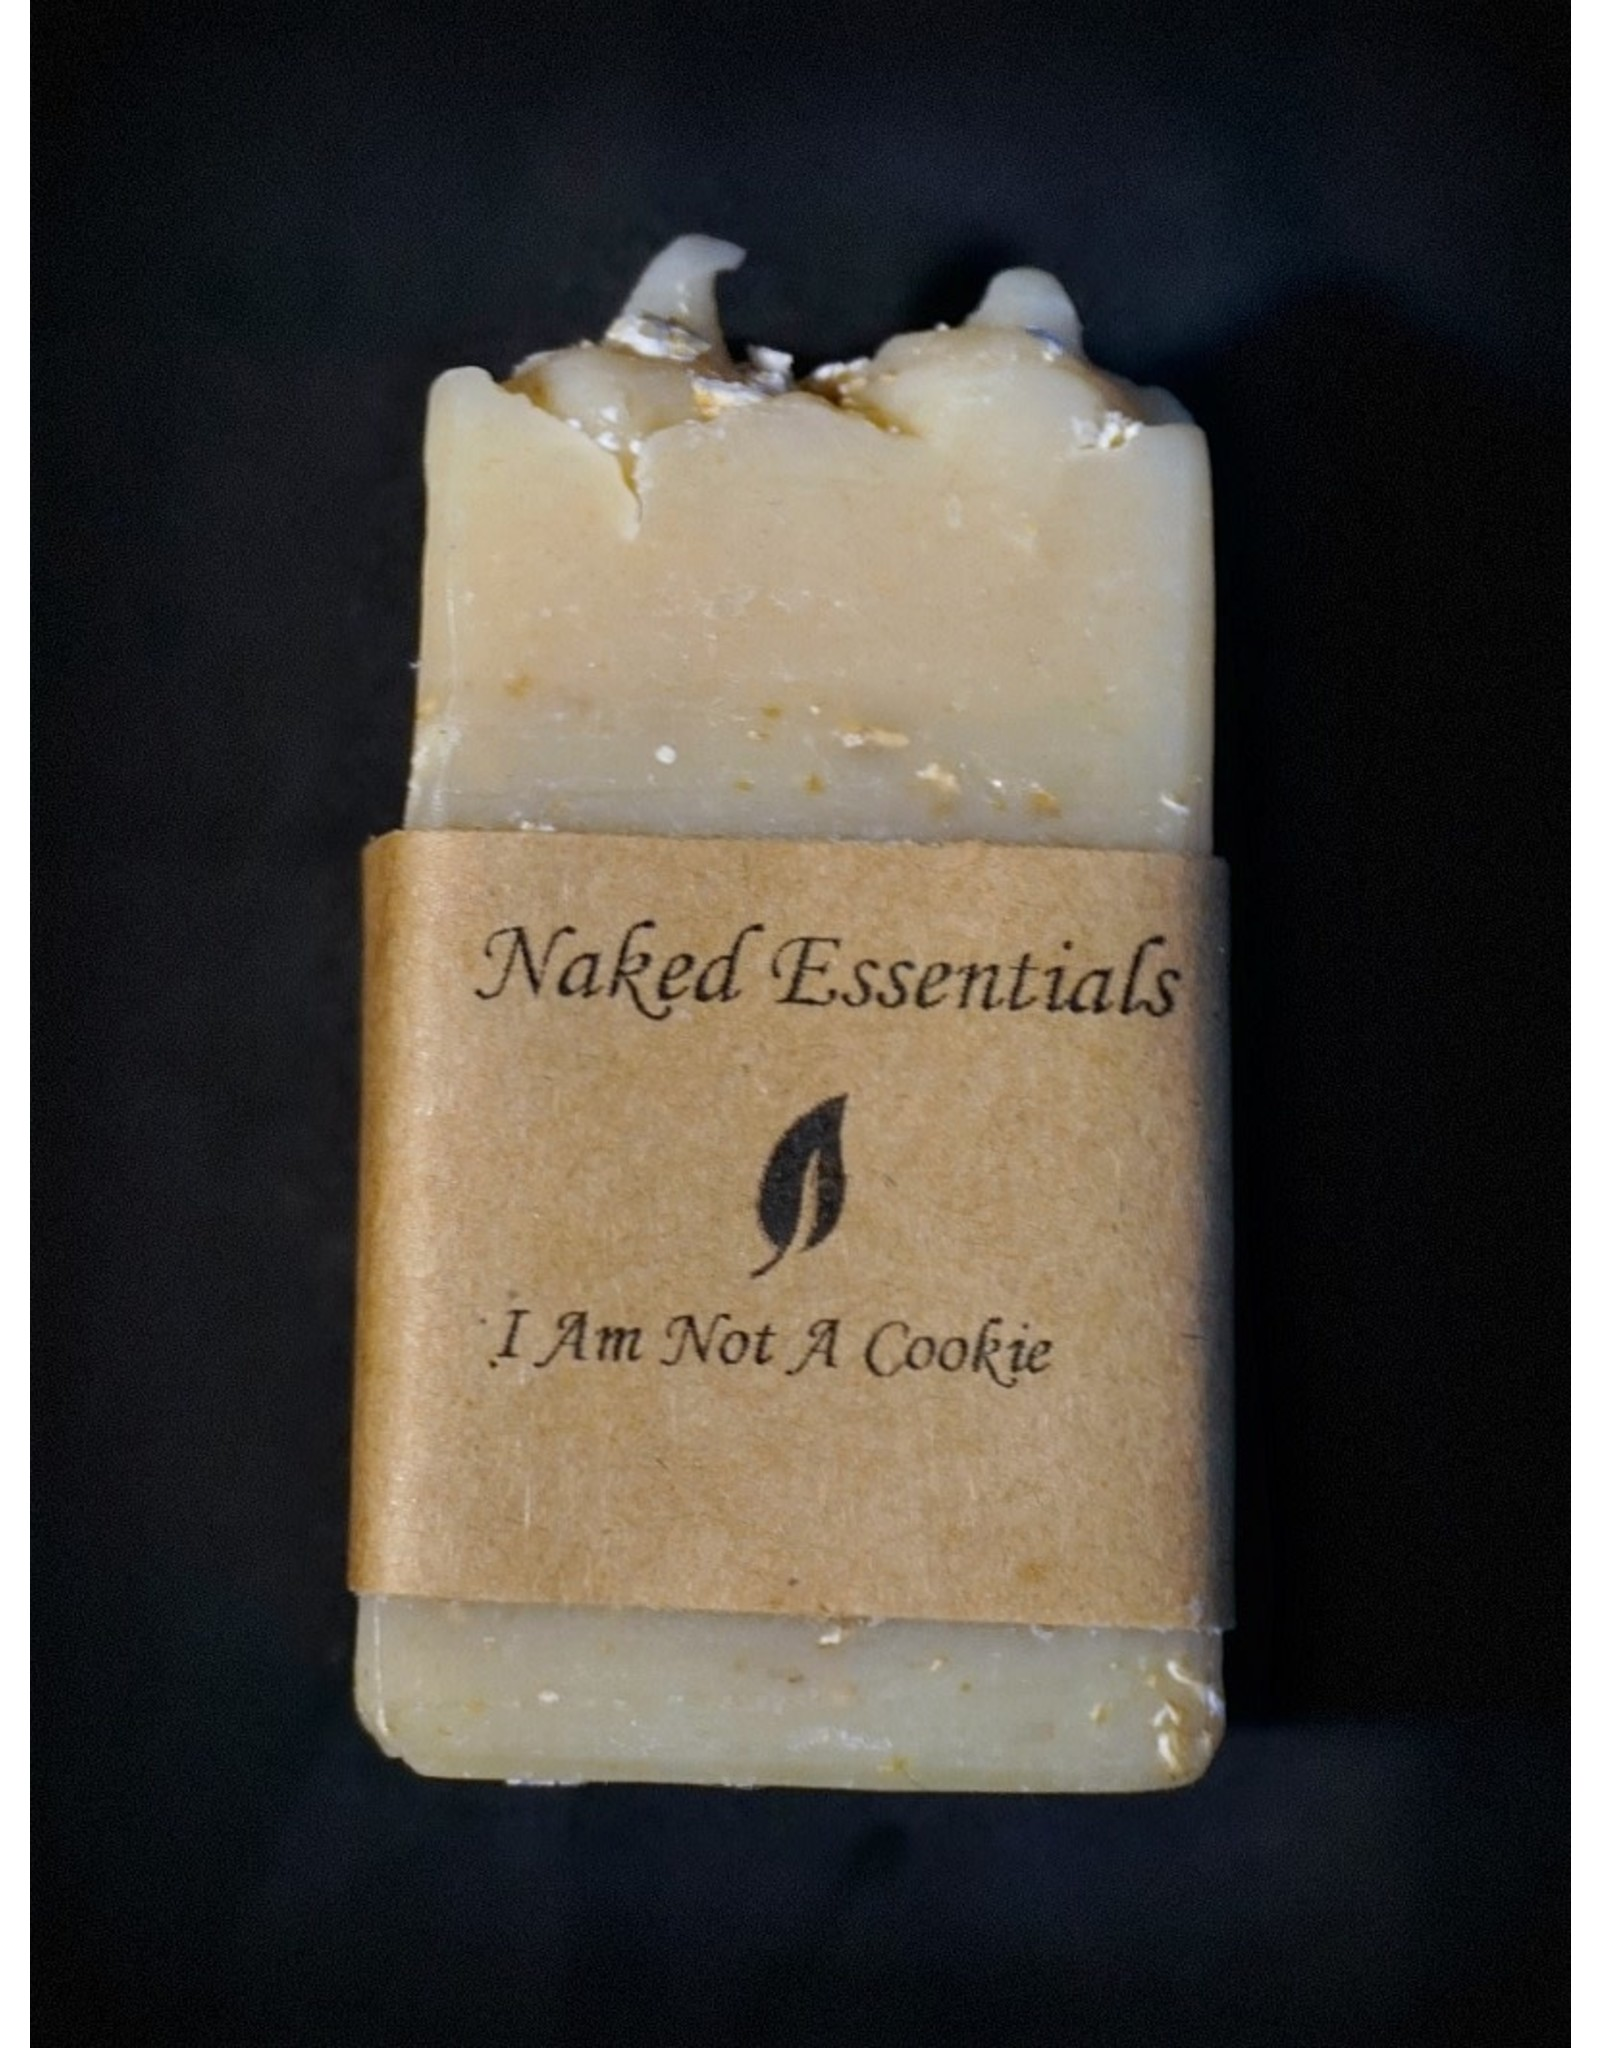 Naked Essentials Naked Essentials – I Am Not A Cookie